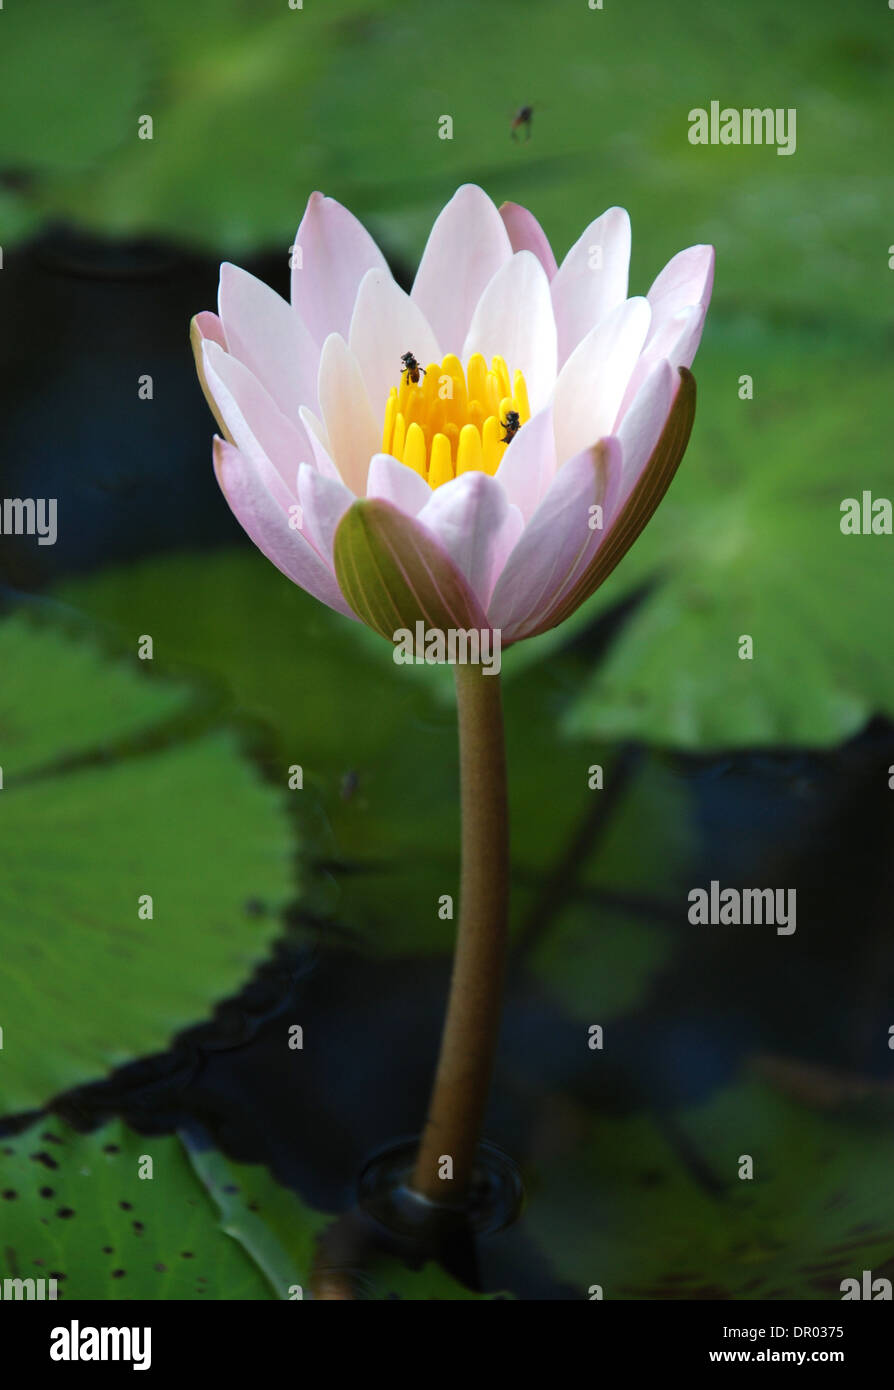 Water Lily Scent Of Asian Exotic Flower Stock Photo 65770745 Alamy